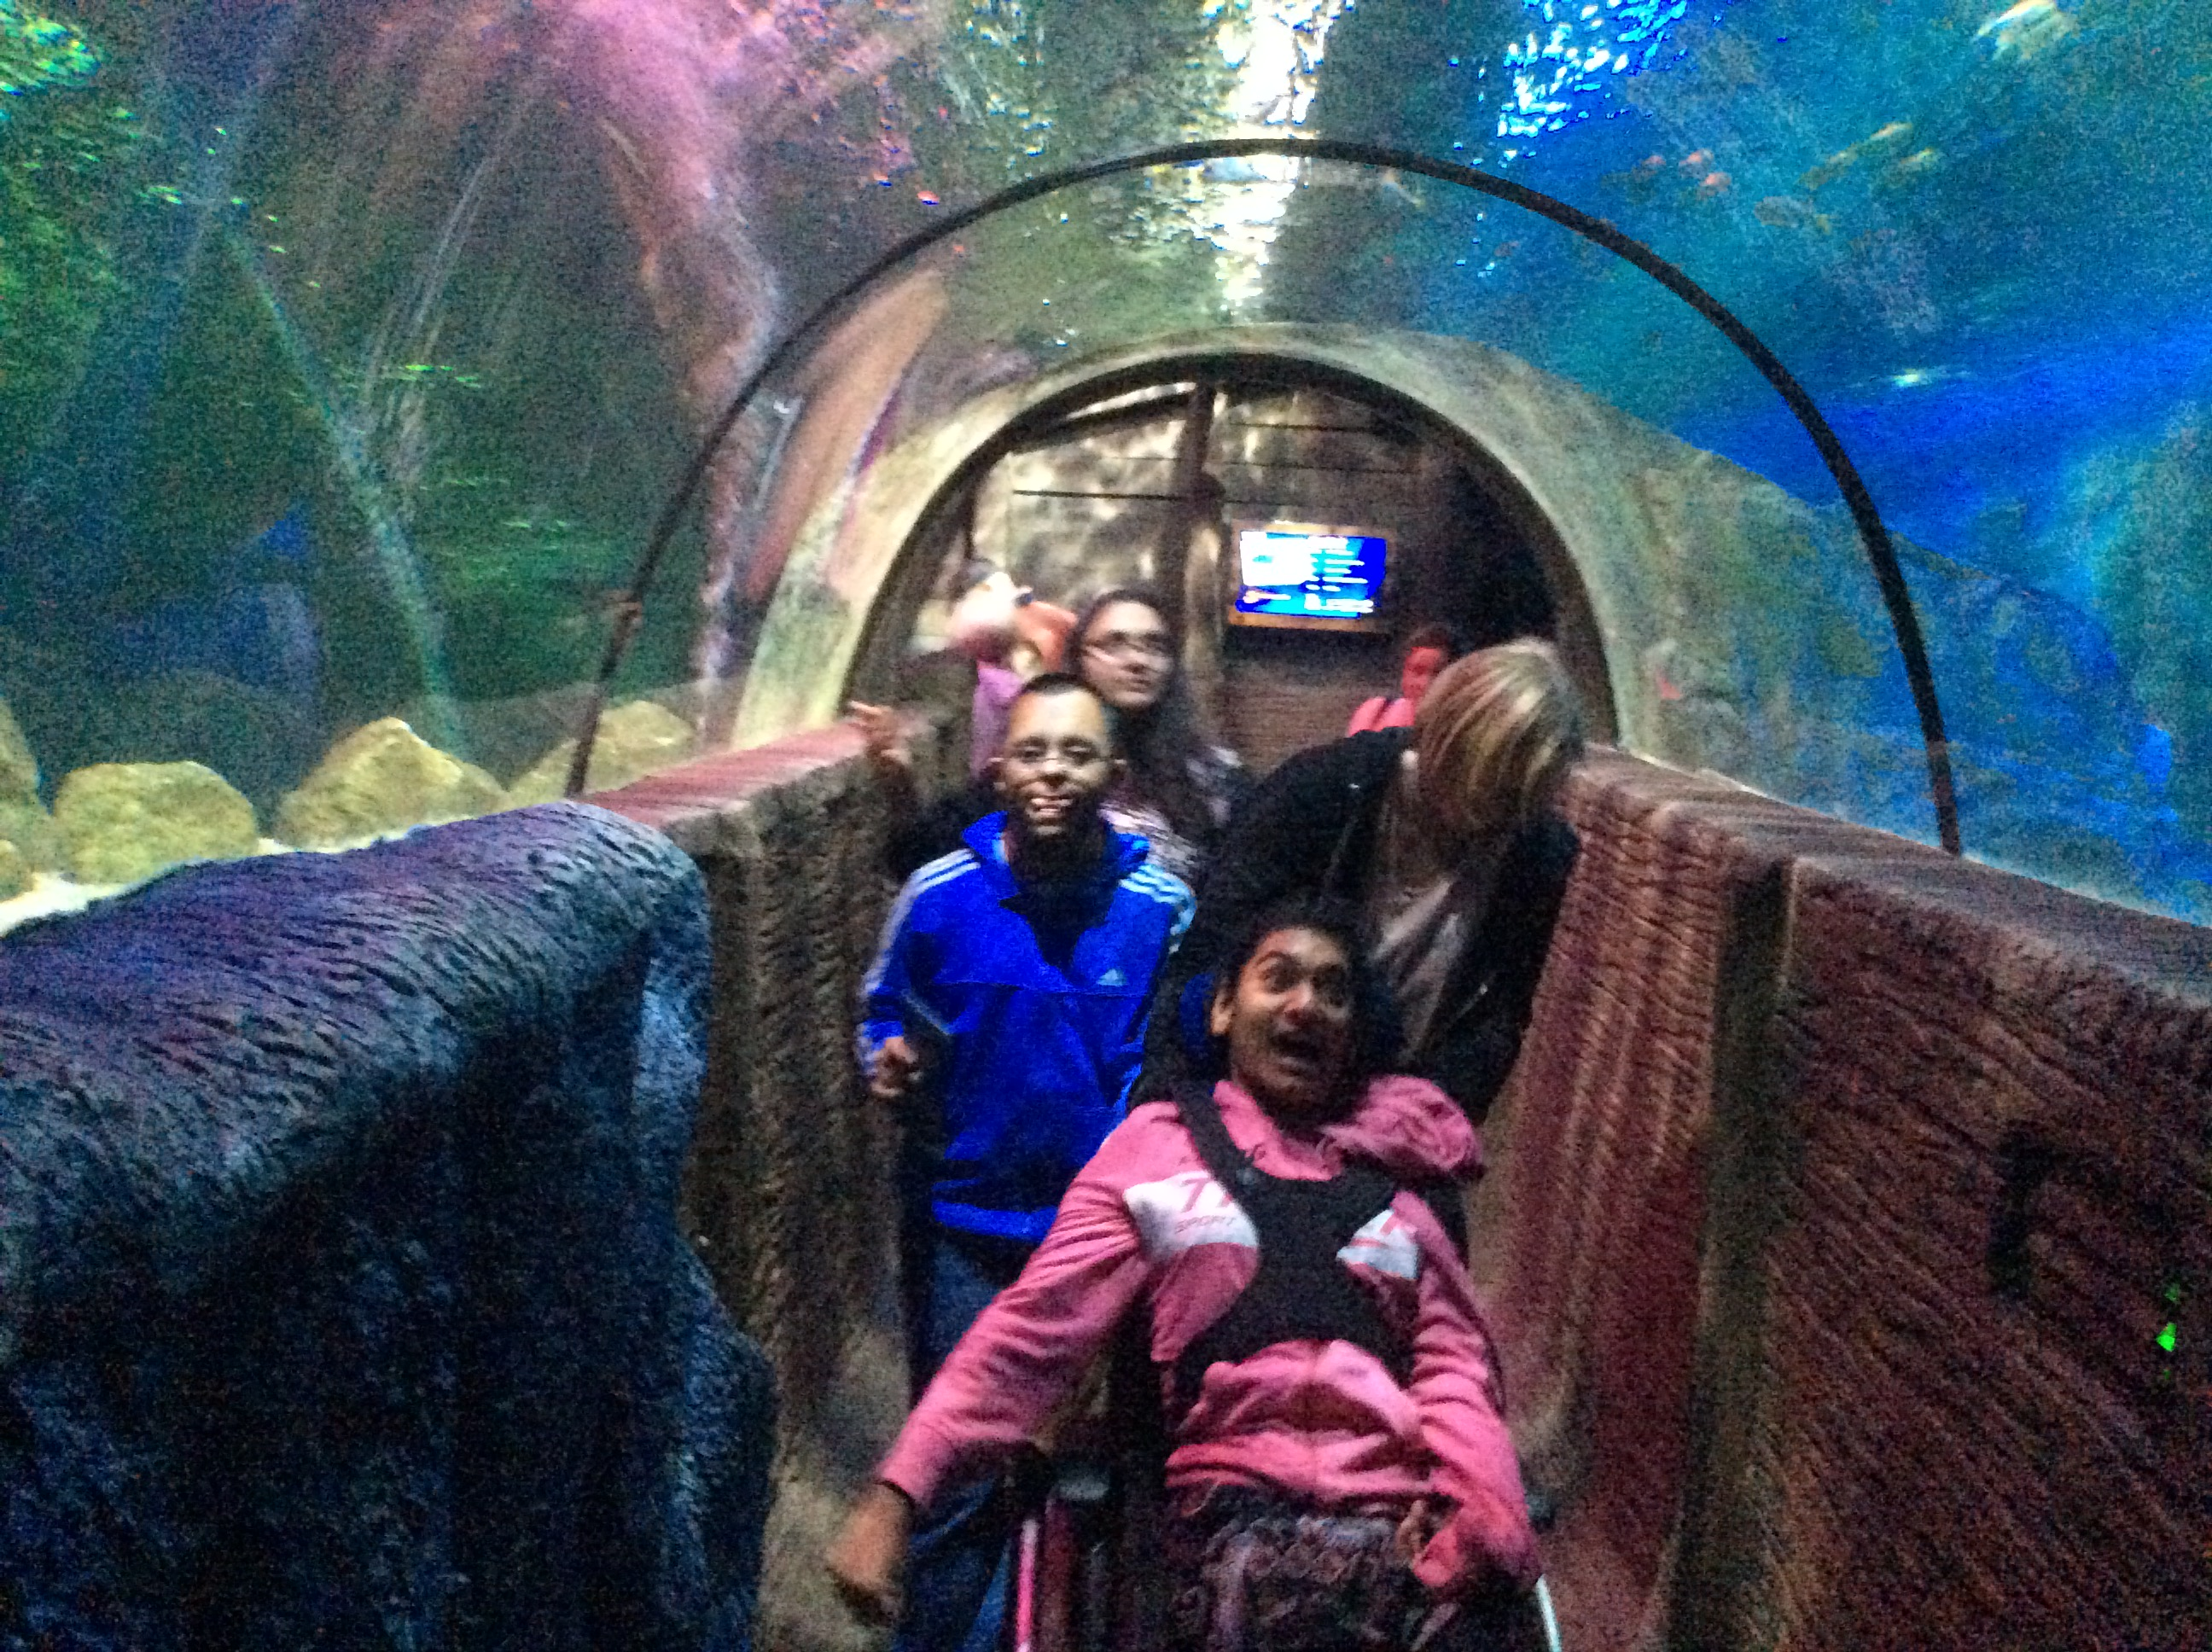 TG1 Summer Trip - The Sealife Centre